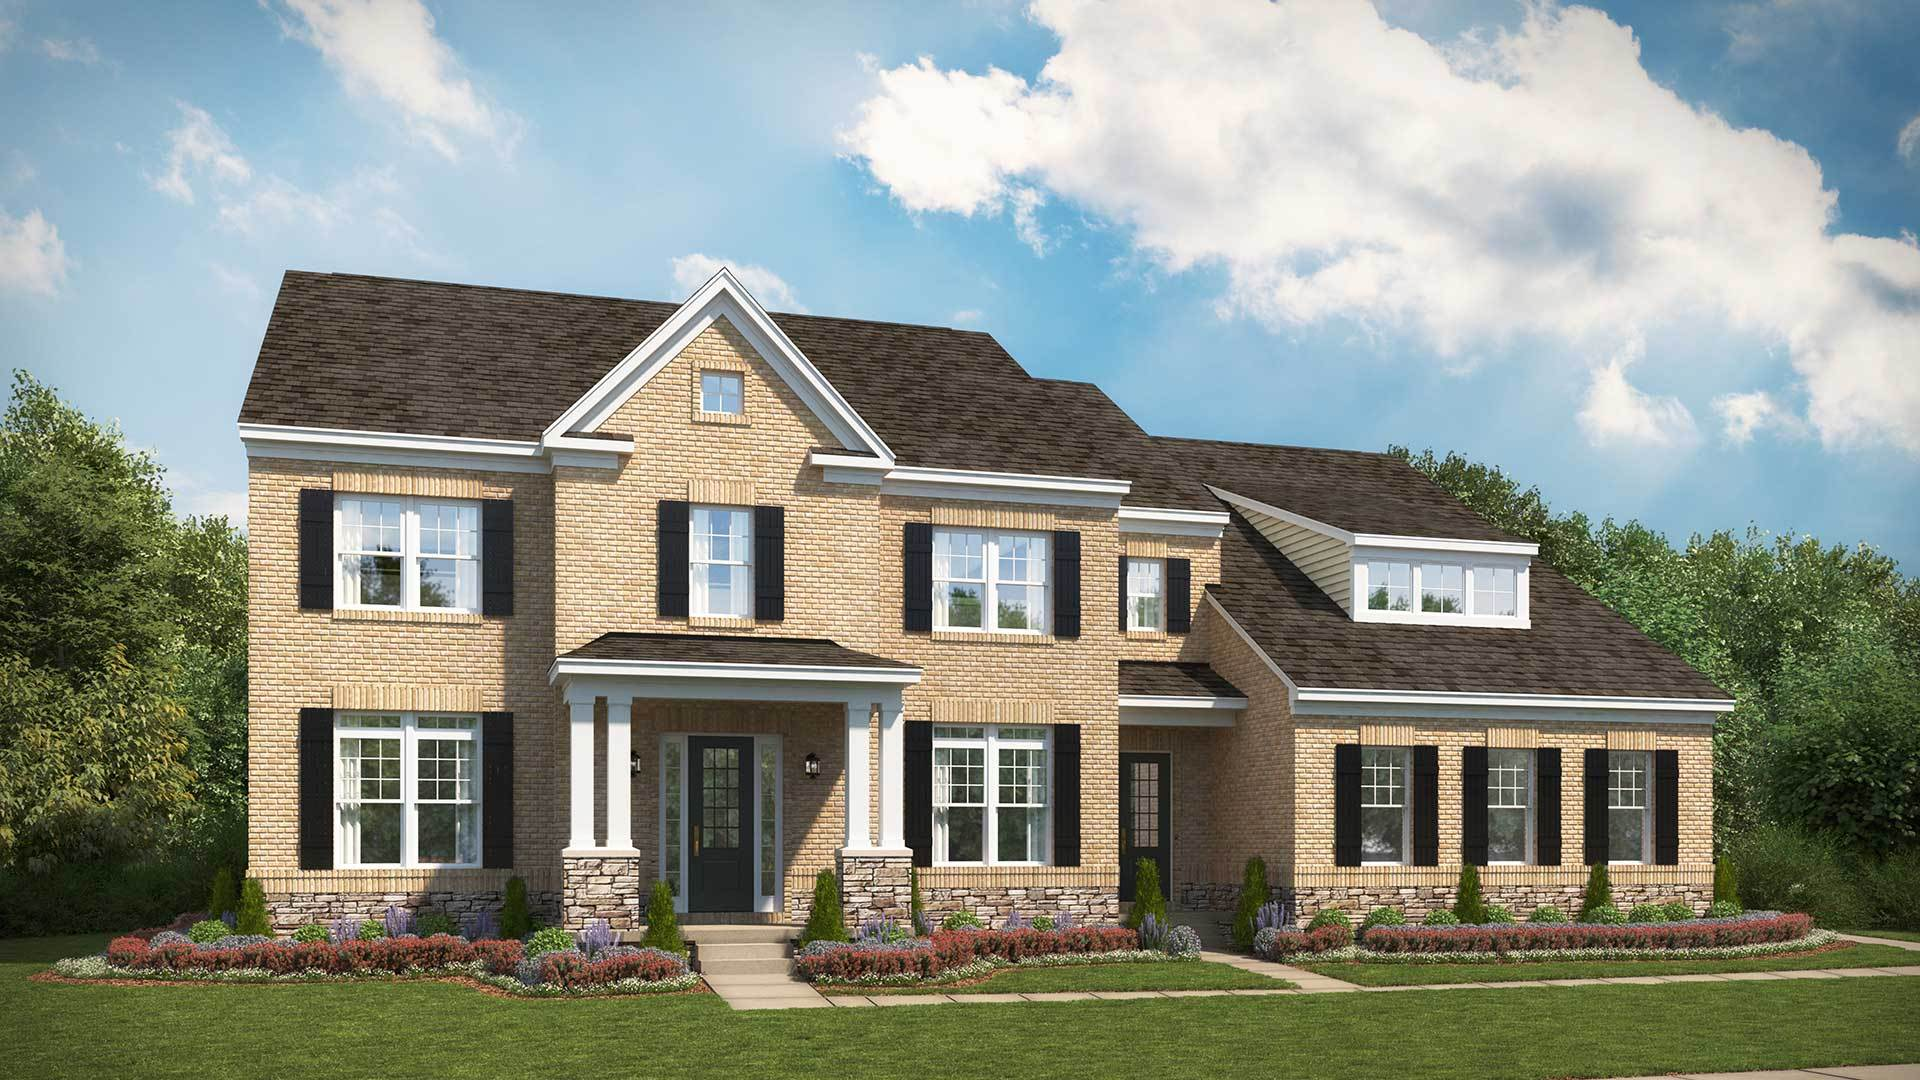 Single Family for Active at Greenwood Farm - Travers 3651 Greenwood Farm Dr. Haymarket, Virginia 20169 United States